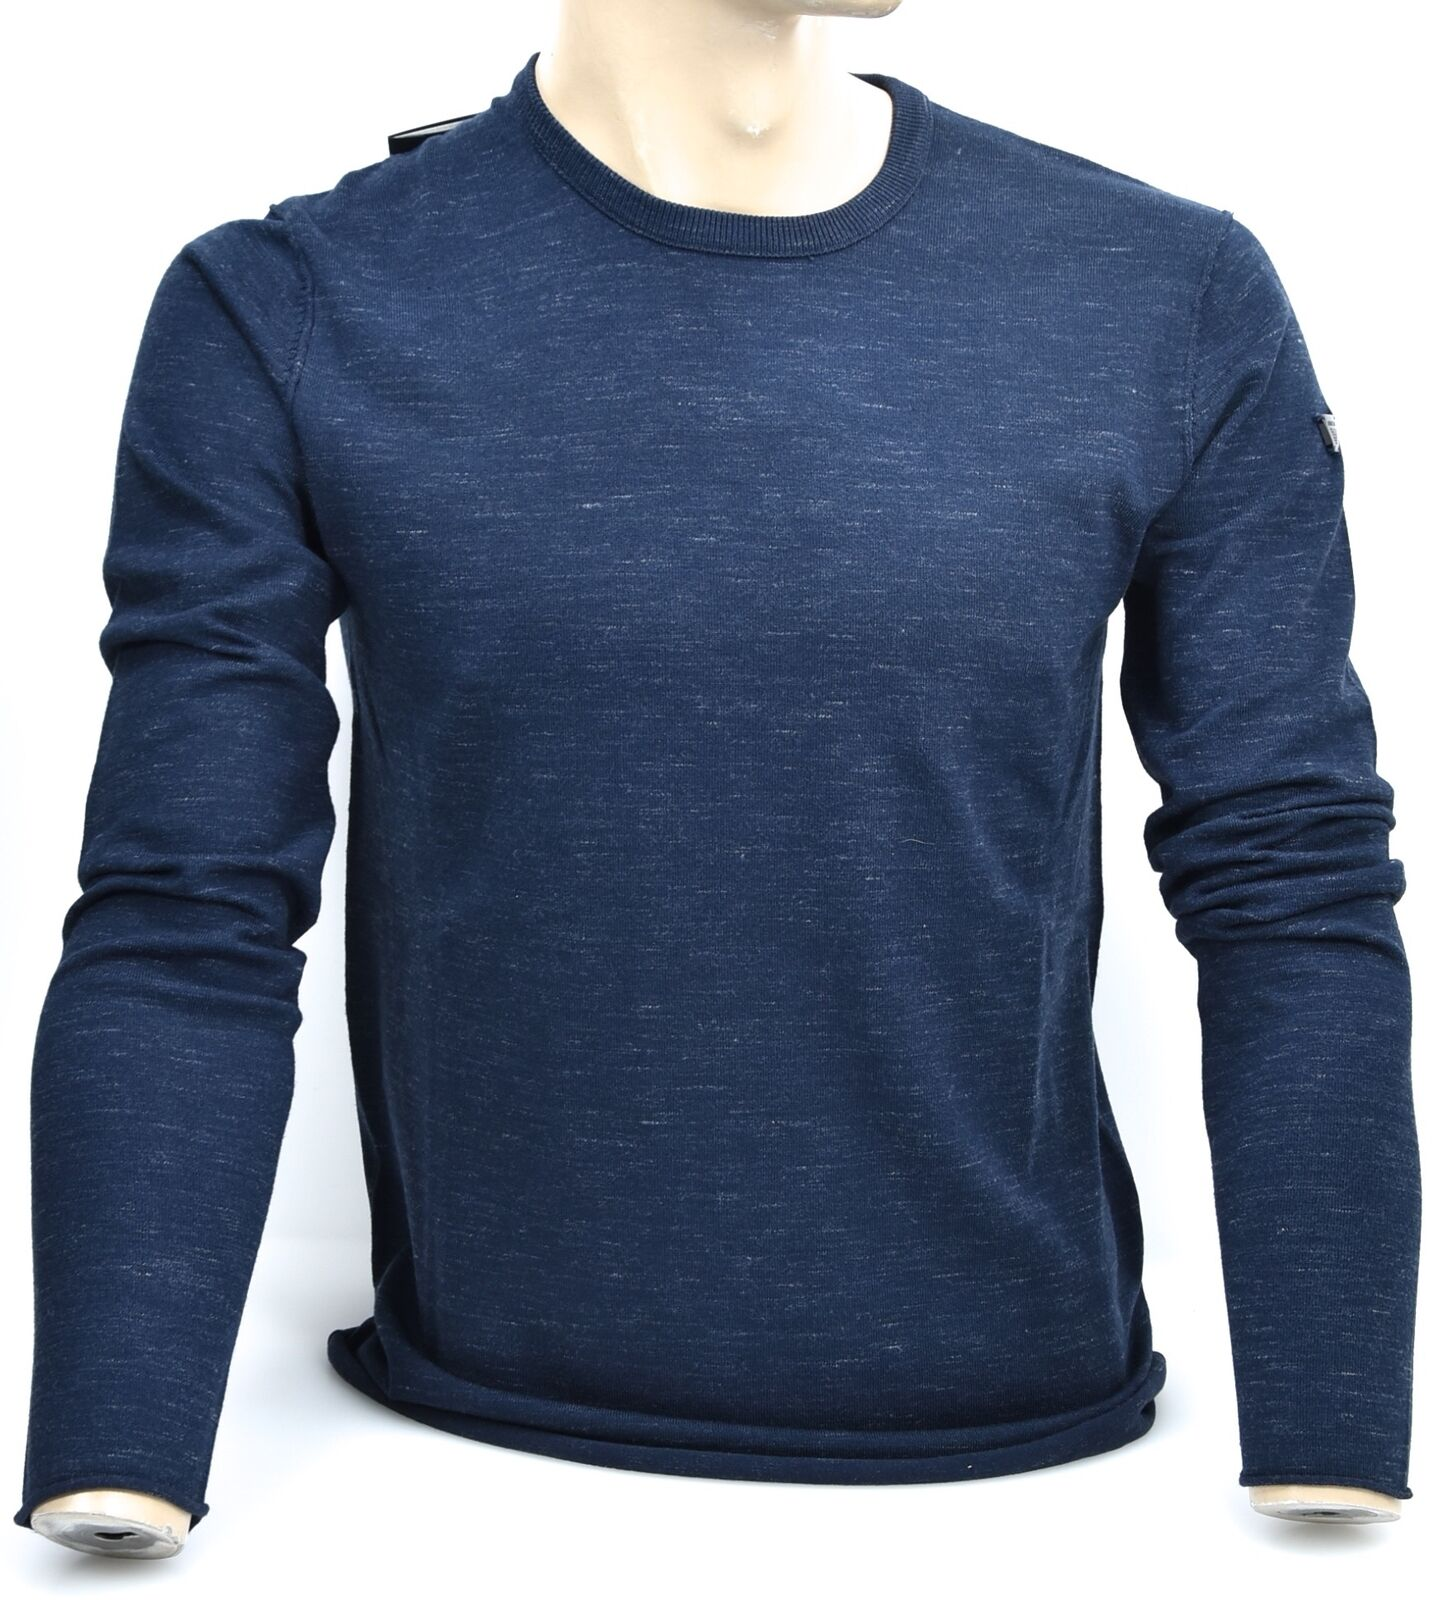 ARMANI JEANS HOMBRE JERSEY SUÉTER CASUAL INVERNAL ART. 6Y6MA5